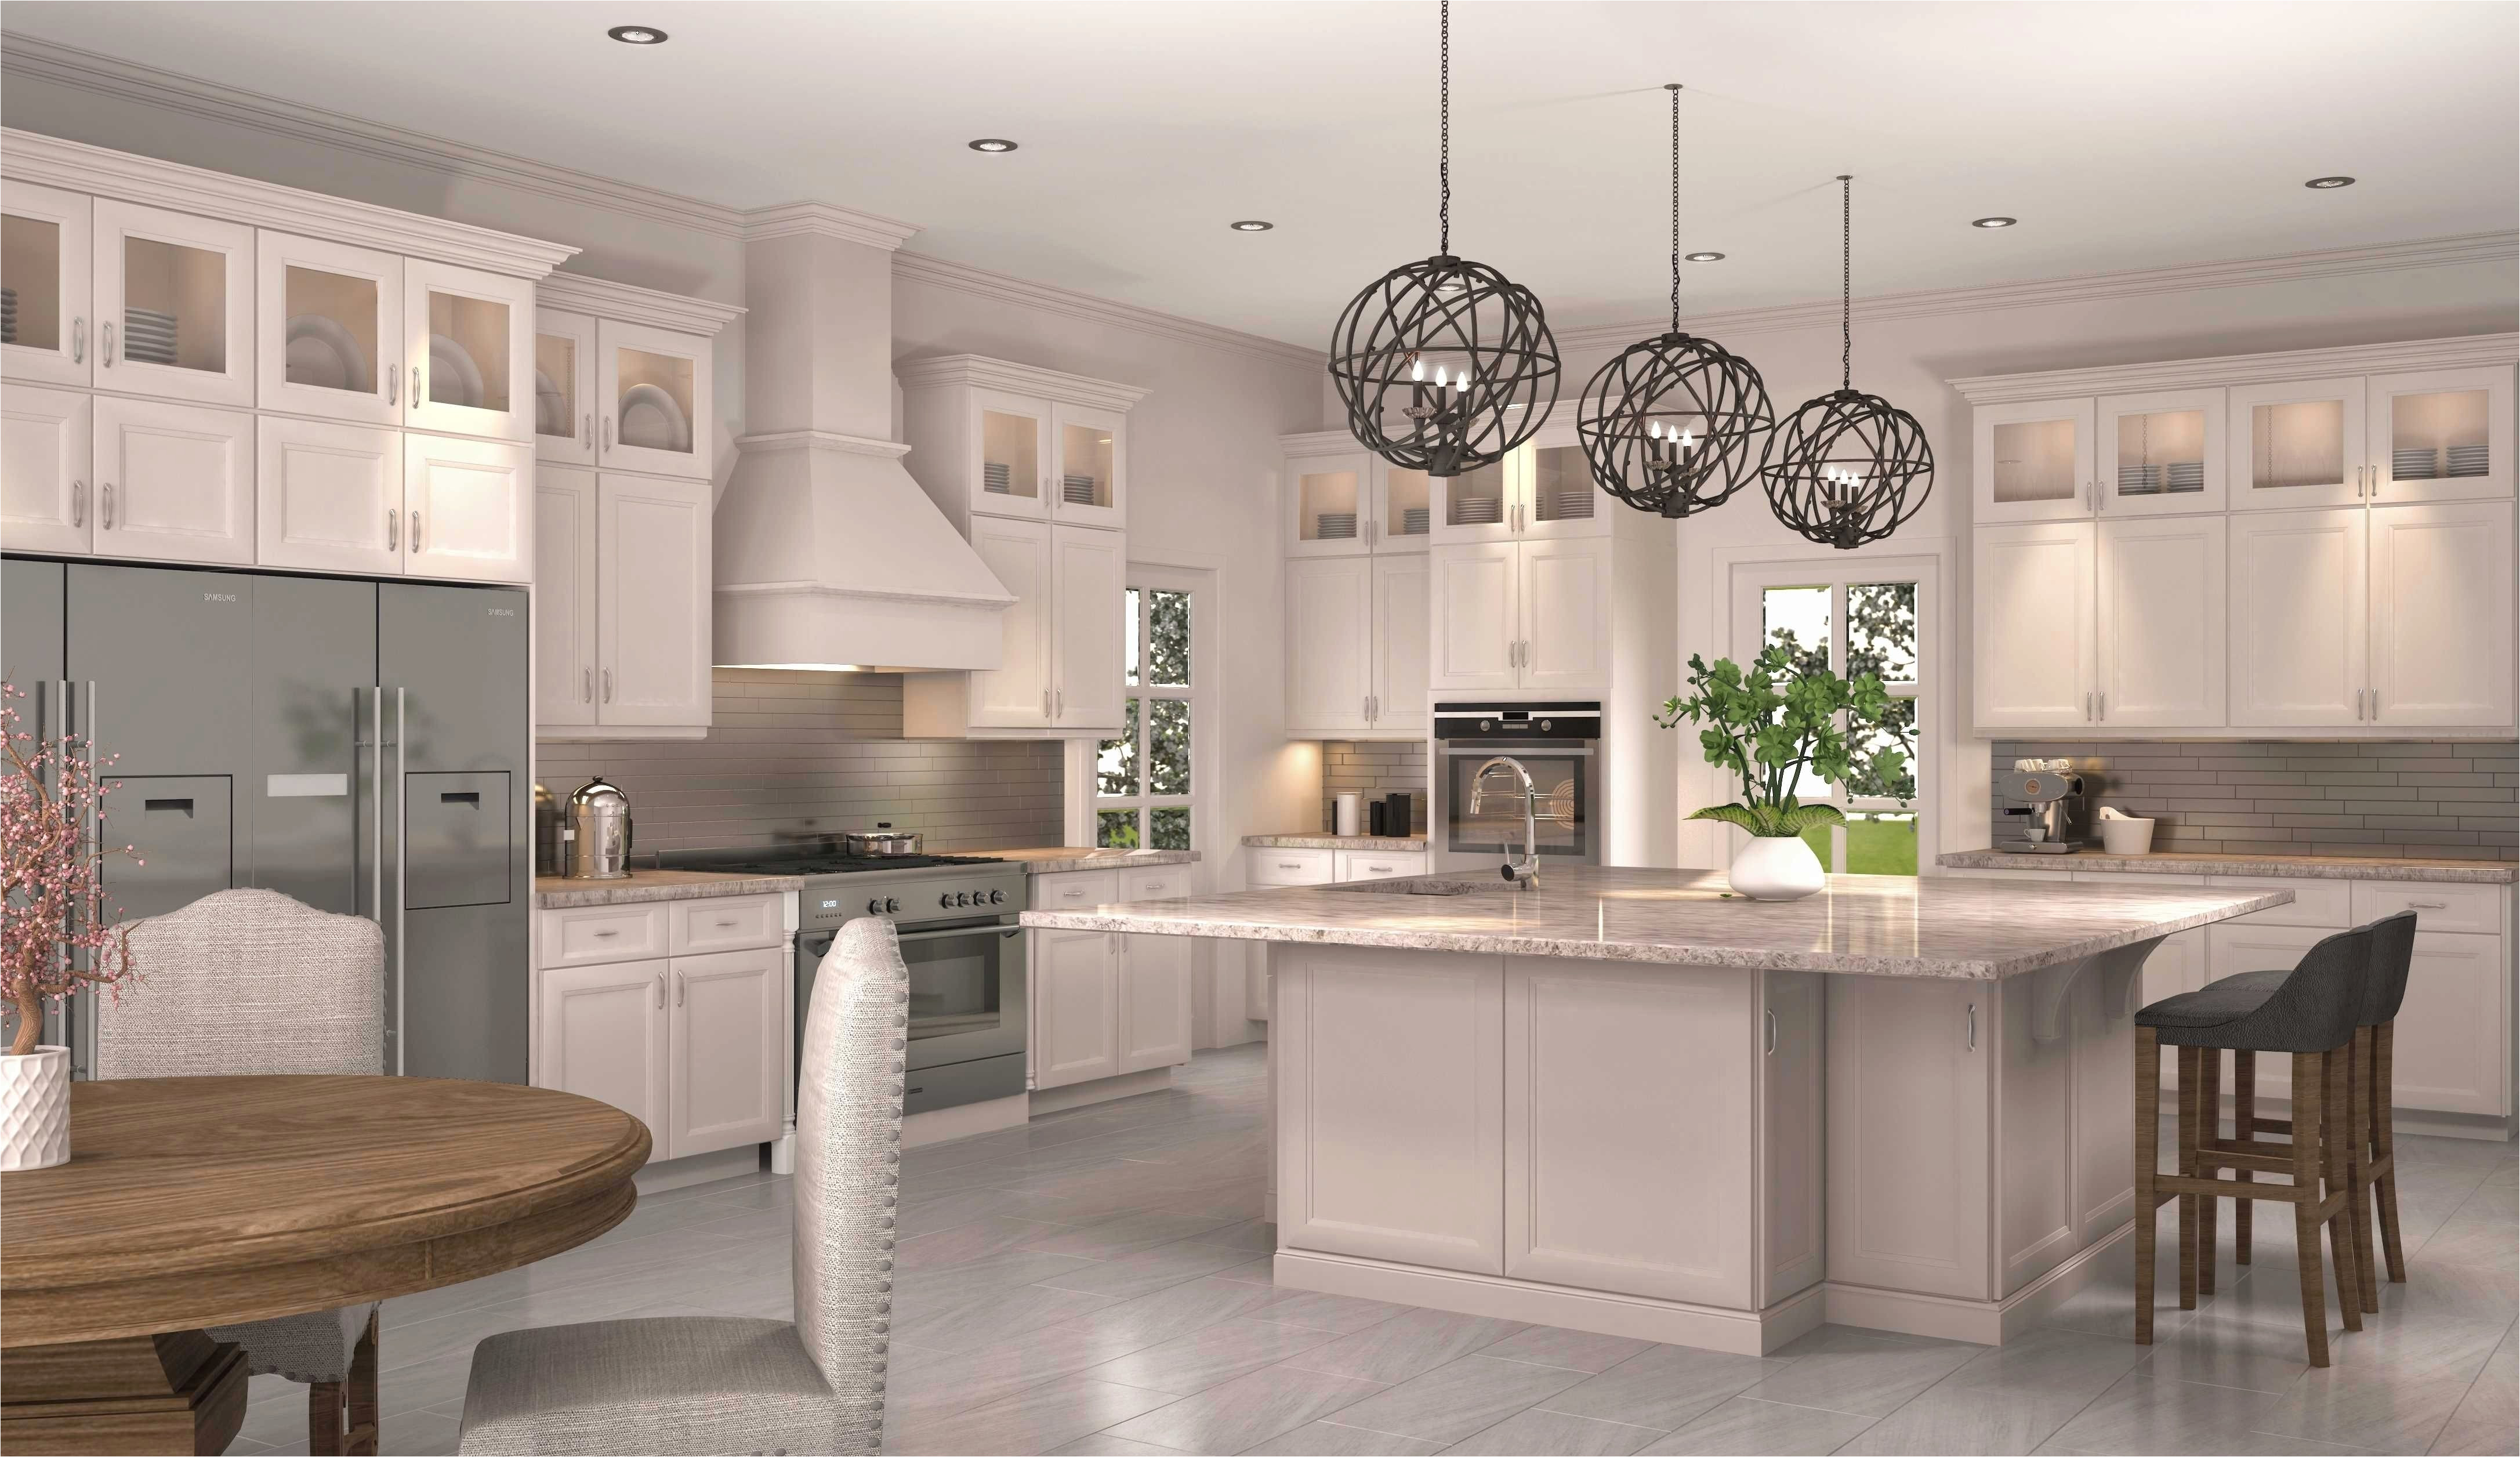 kitchen cabinet outlet from thomasville kitchen cabinets outlet b image source draftruss com b